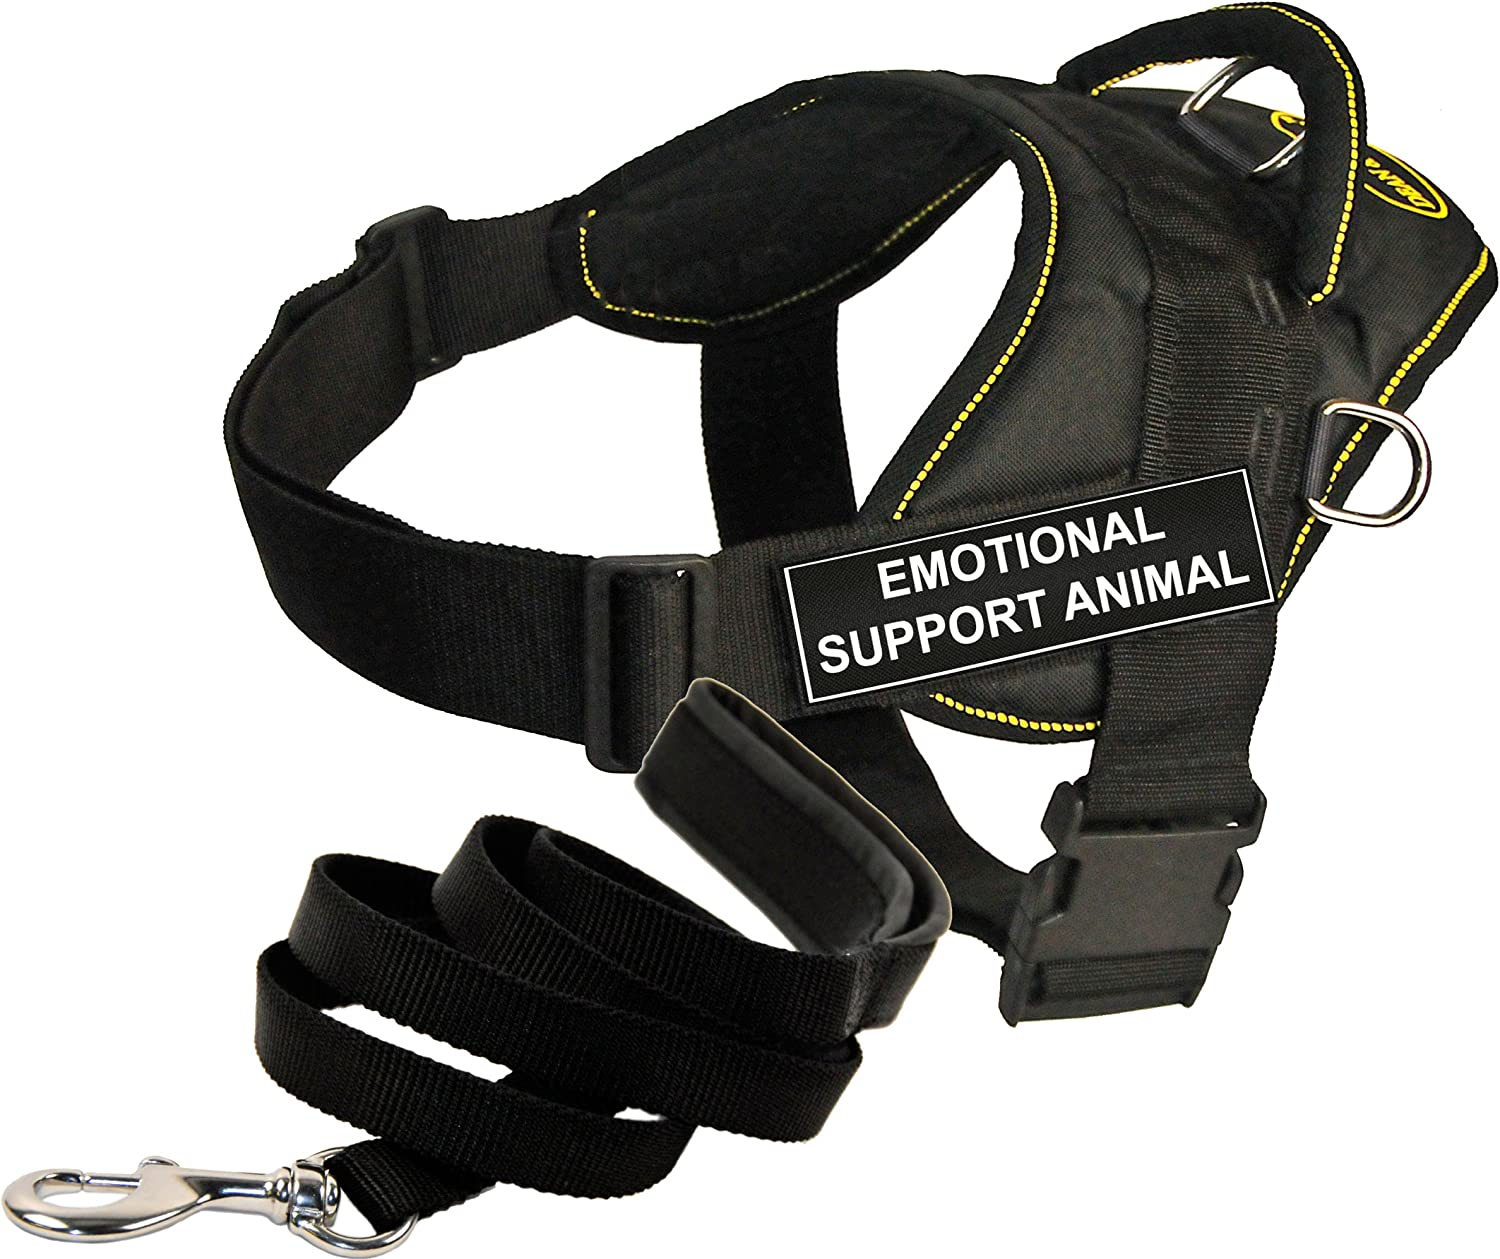 Dean and Tyler Bundle  DT Fun Works  Harness, Emotional Support Animal, Yellow Trim, Large + Padded Puppy  Leash, 6 FT Stainless Steel Snap  Black